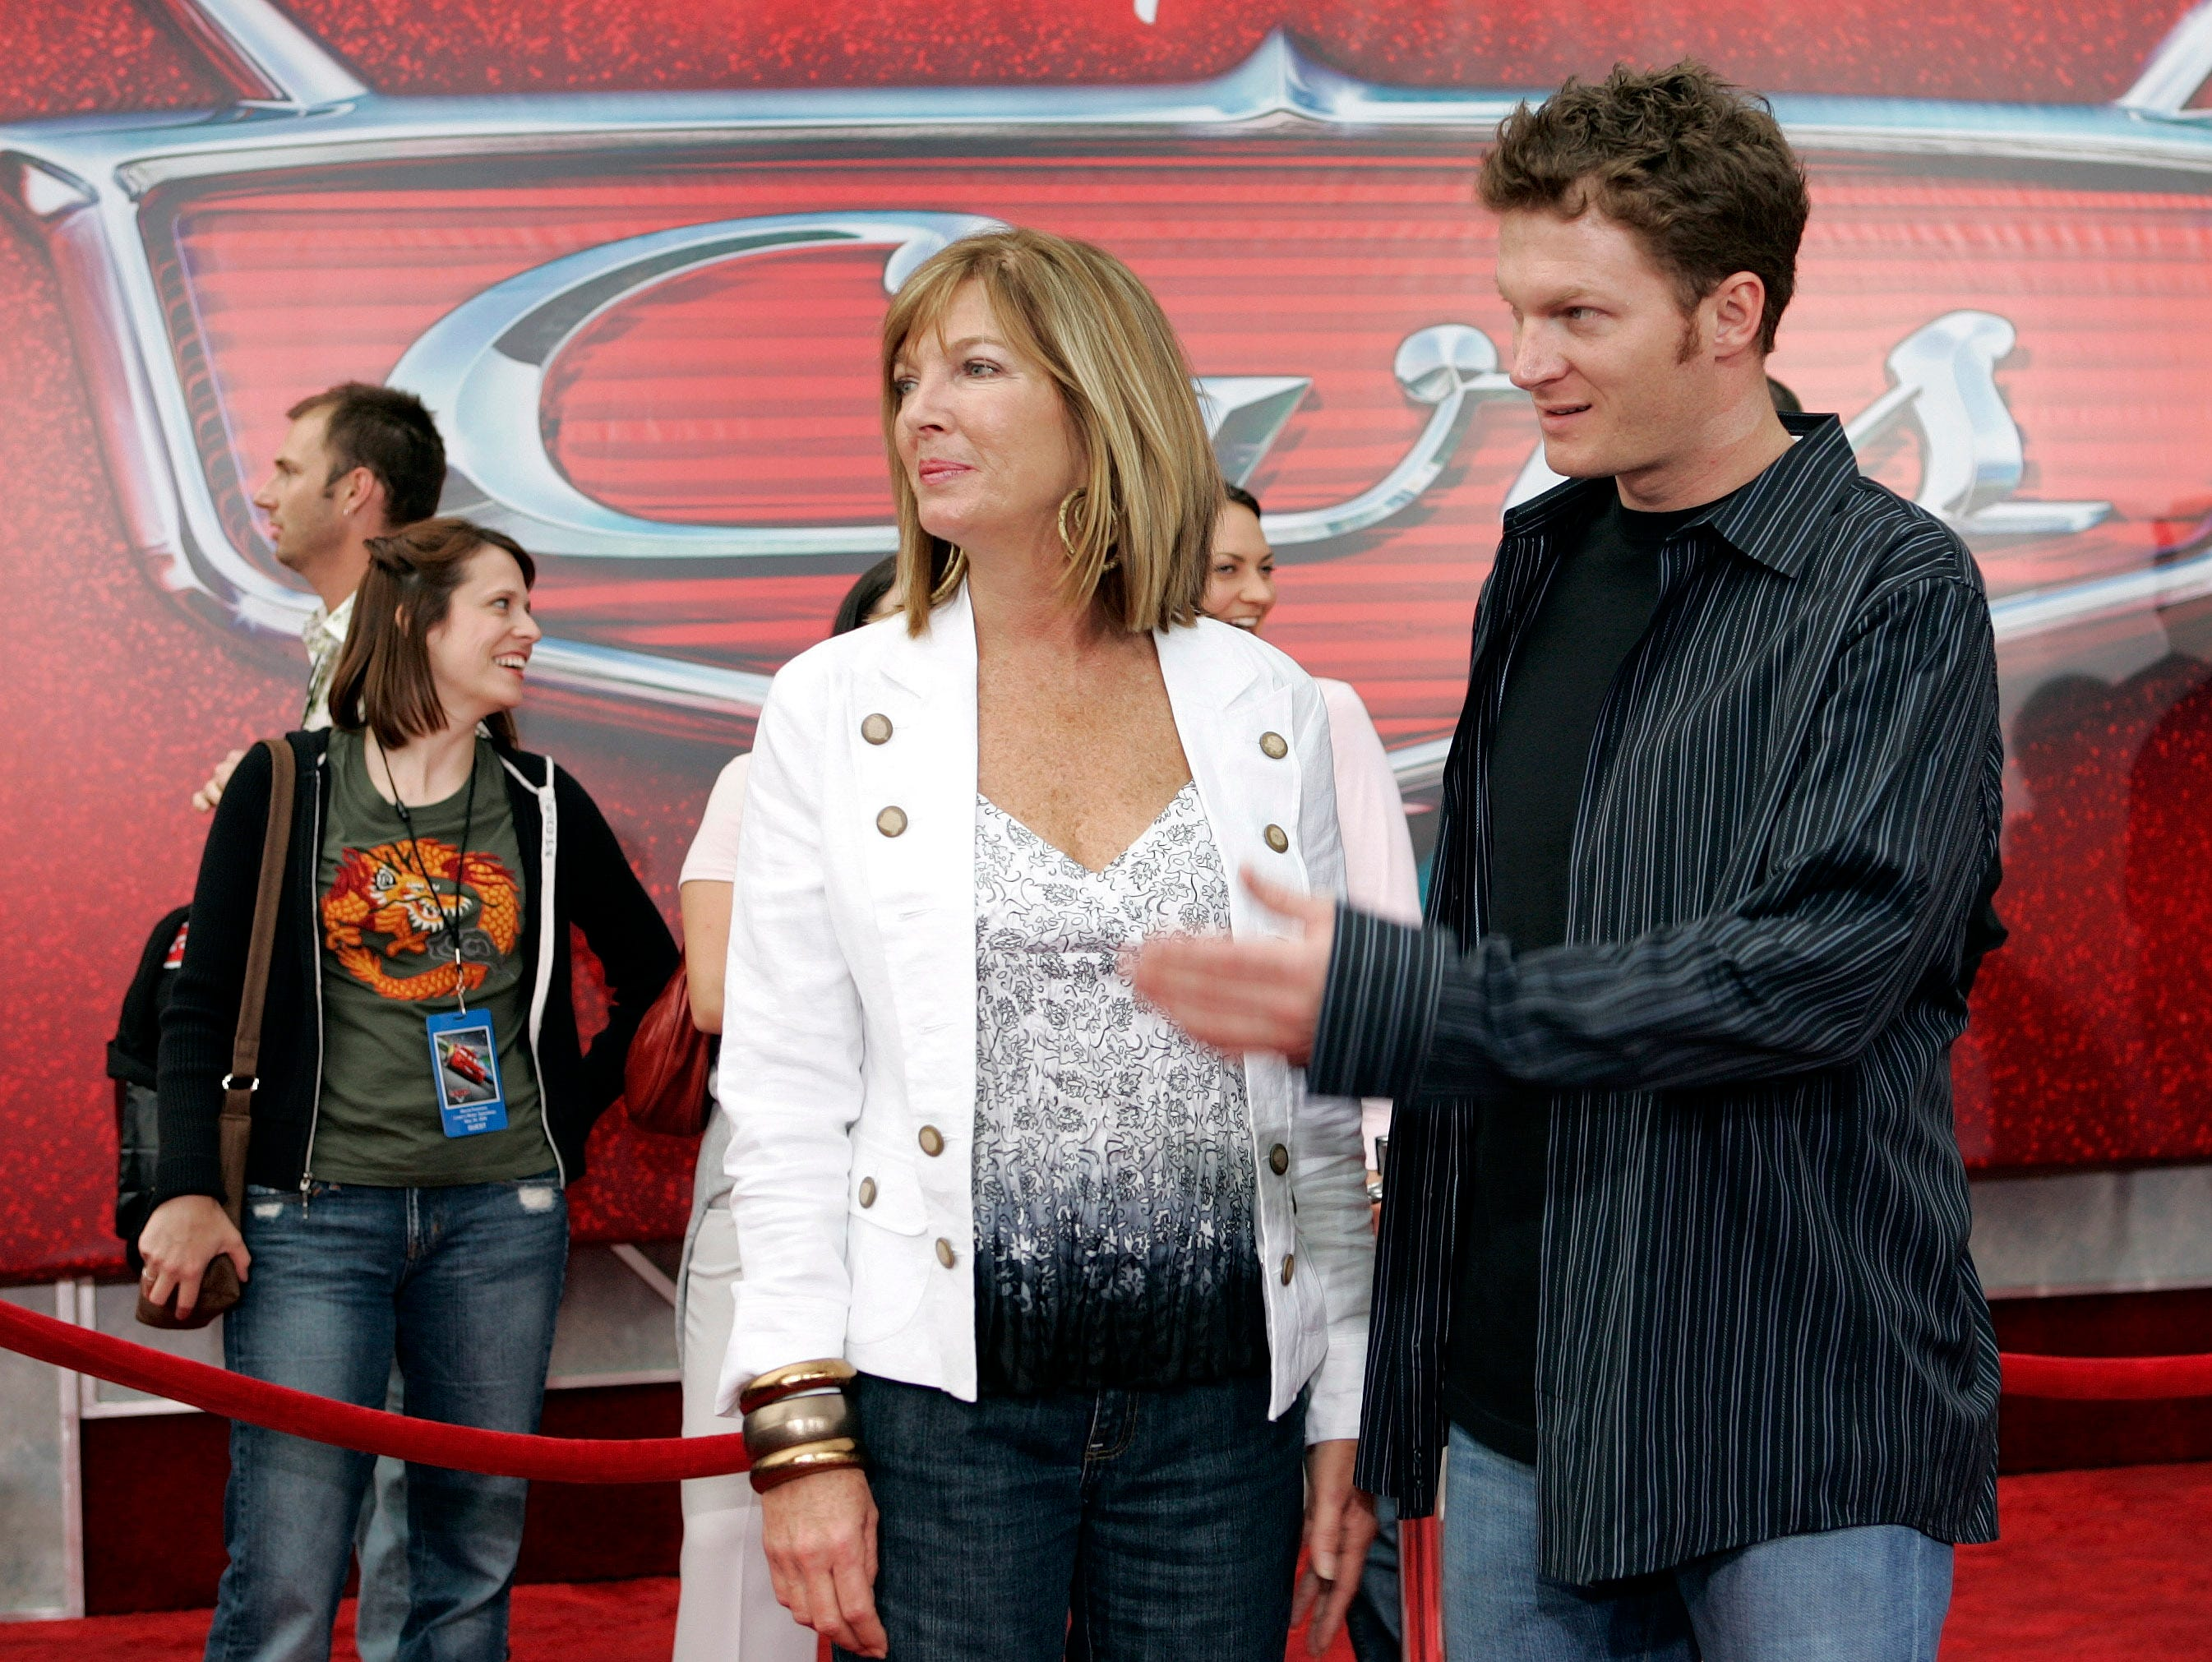 """In this May 26, 2006, file photo, NASCAR driver Dale Earnhardt Jr., right, and his mother Brenda Jackson, front left, arrive for the premiere of the Disney/Pixar animated film """"Cars"""" at Lowe's Motor Speedway in Concord, N.C. Jackson, a longtime employee at JR Motorsports, has died following a battle with cancer. She was 65. The team announced her death Monday, April 22, 2019."""